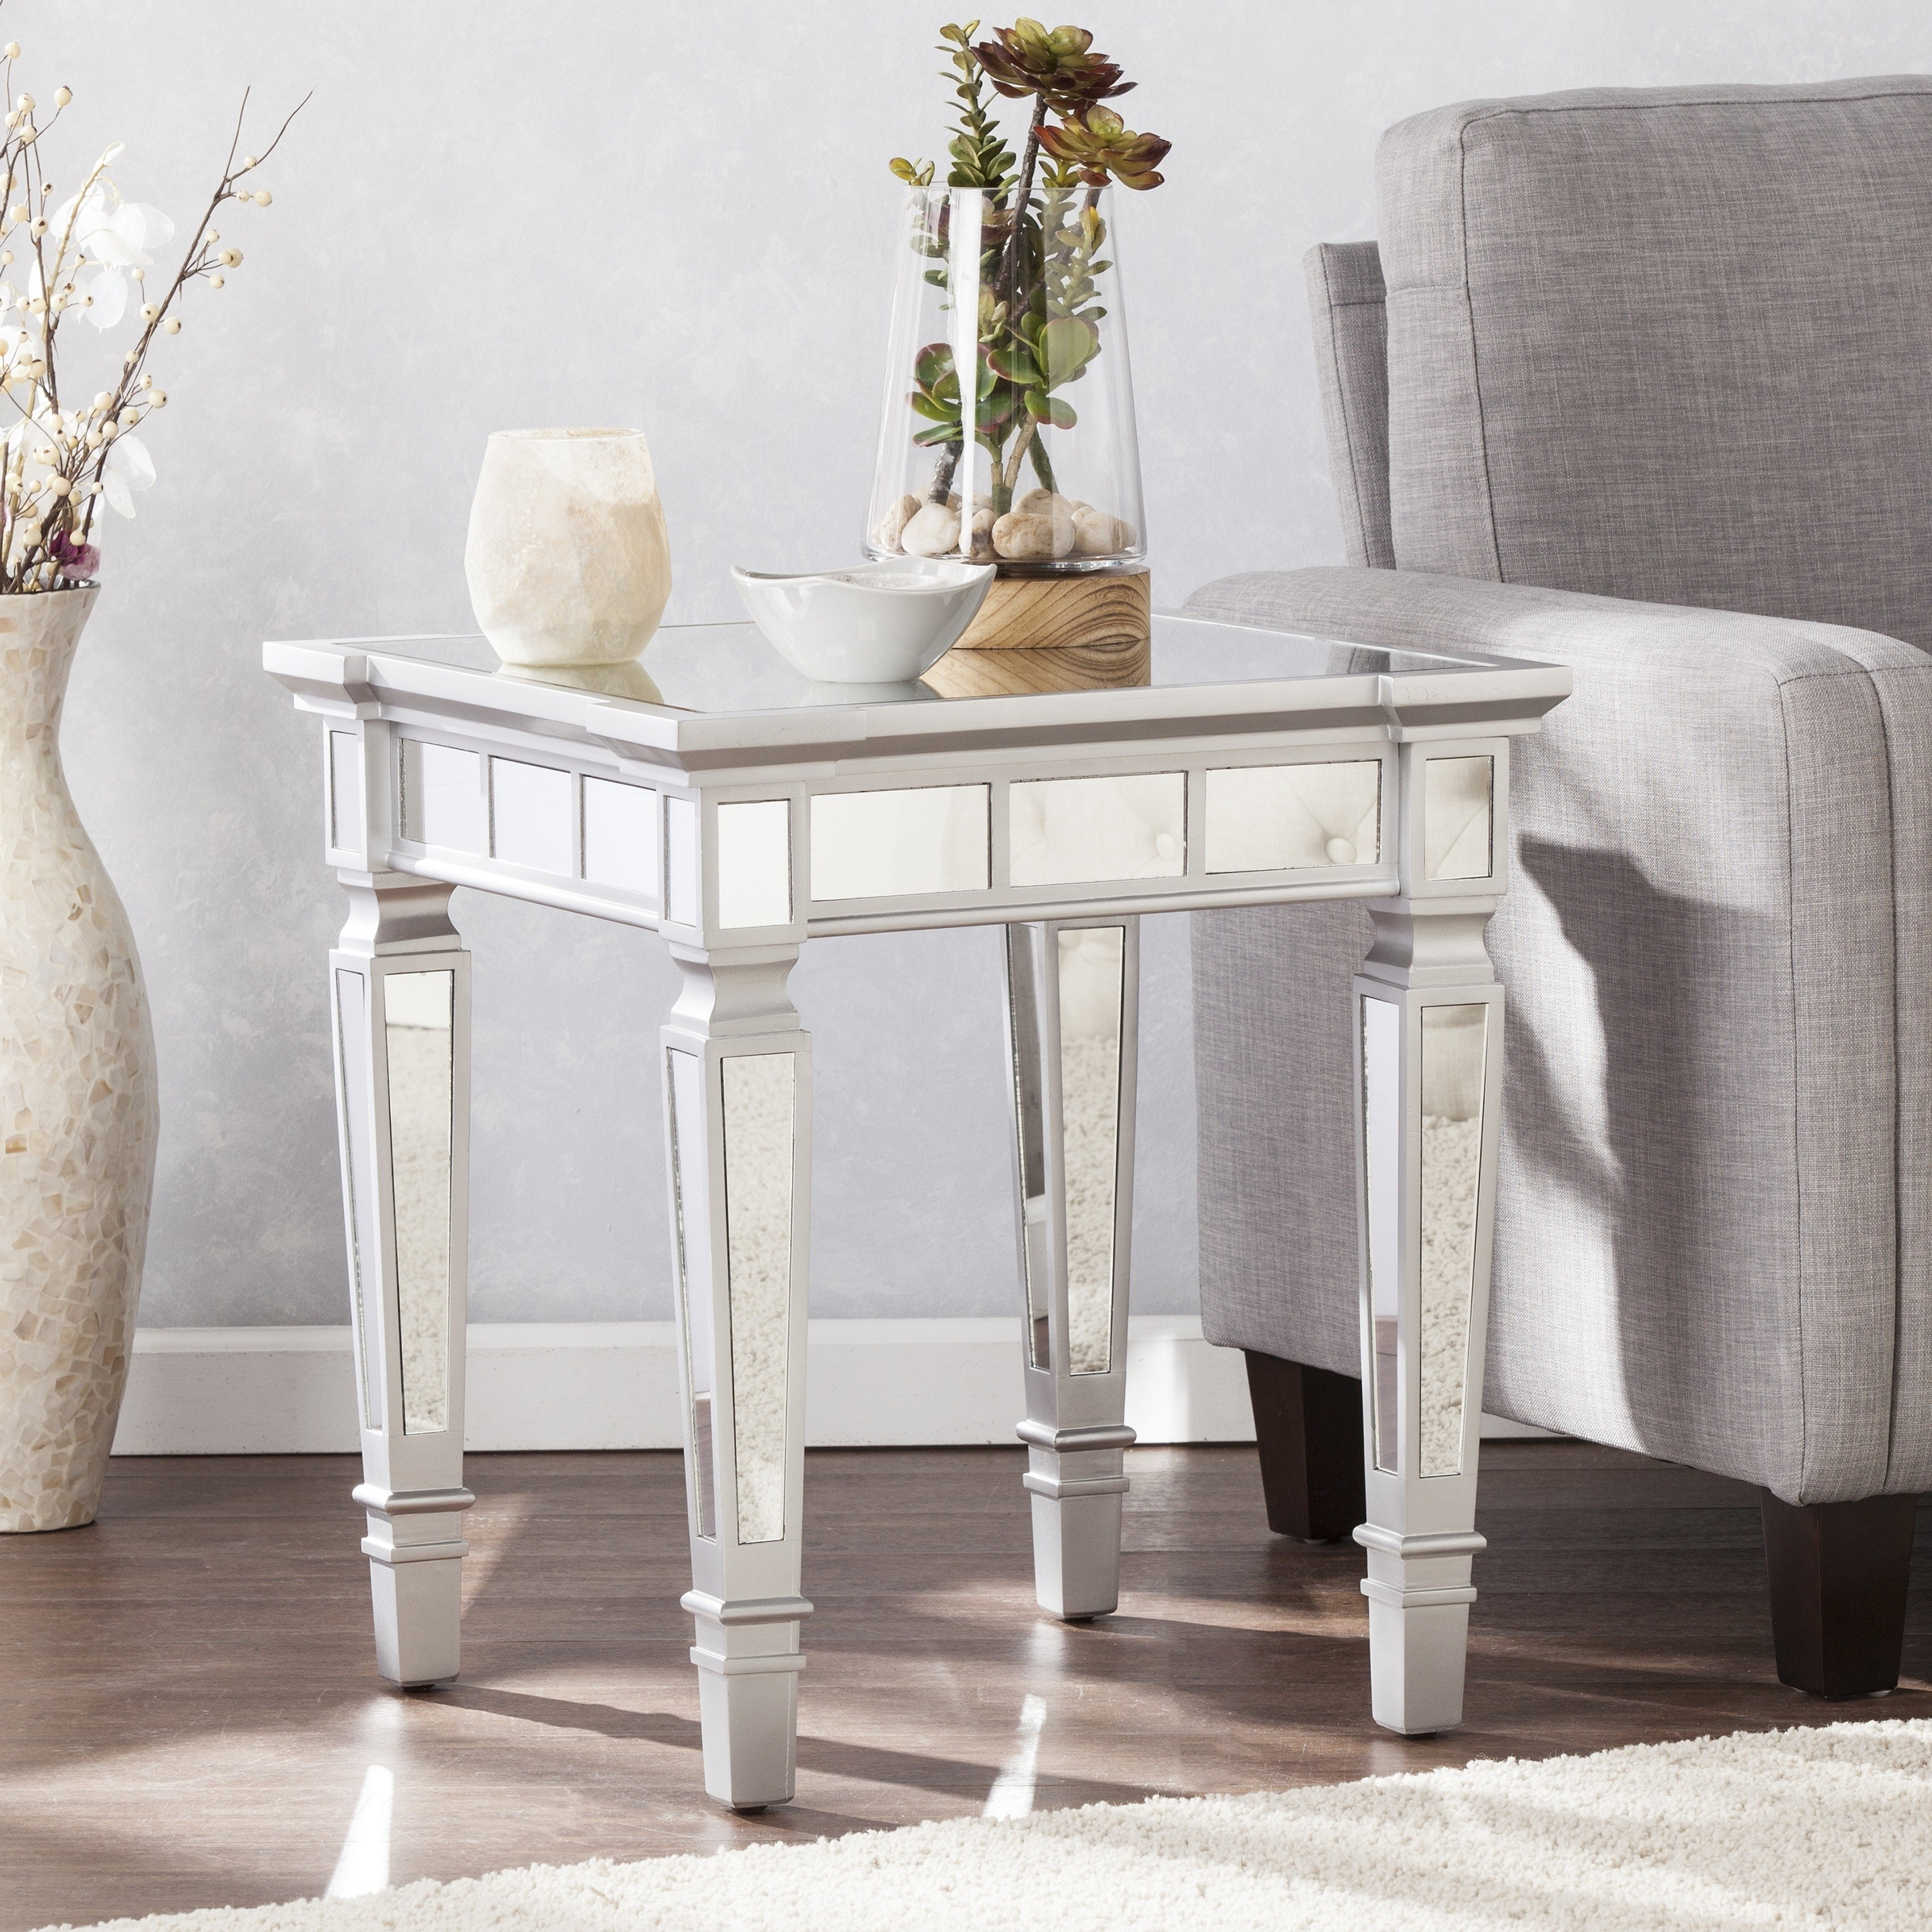 Silver Orchid Olivia Glam Mirrored Square End Table – Matte Silver In Well Liked Silver Orchid Olivia Mirrored Coffee Cocktail Tables (View 18 of 20)